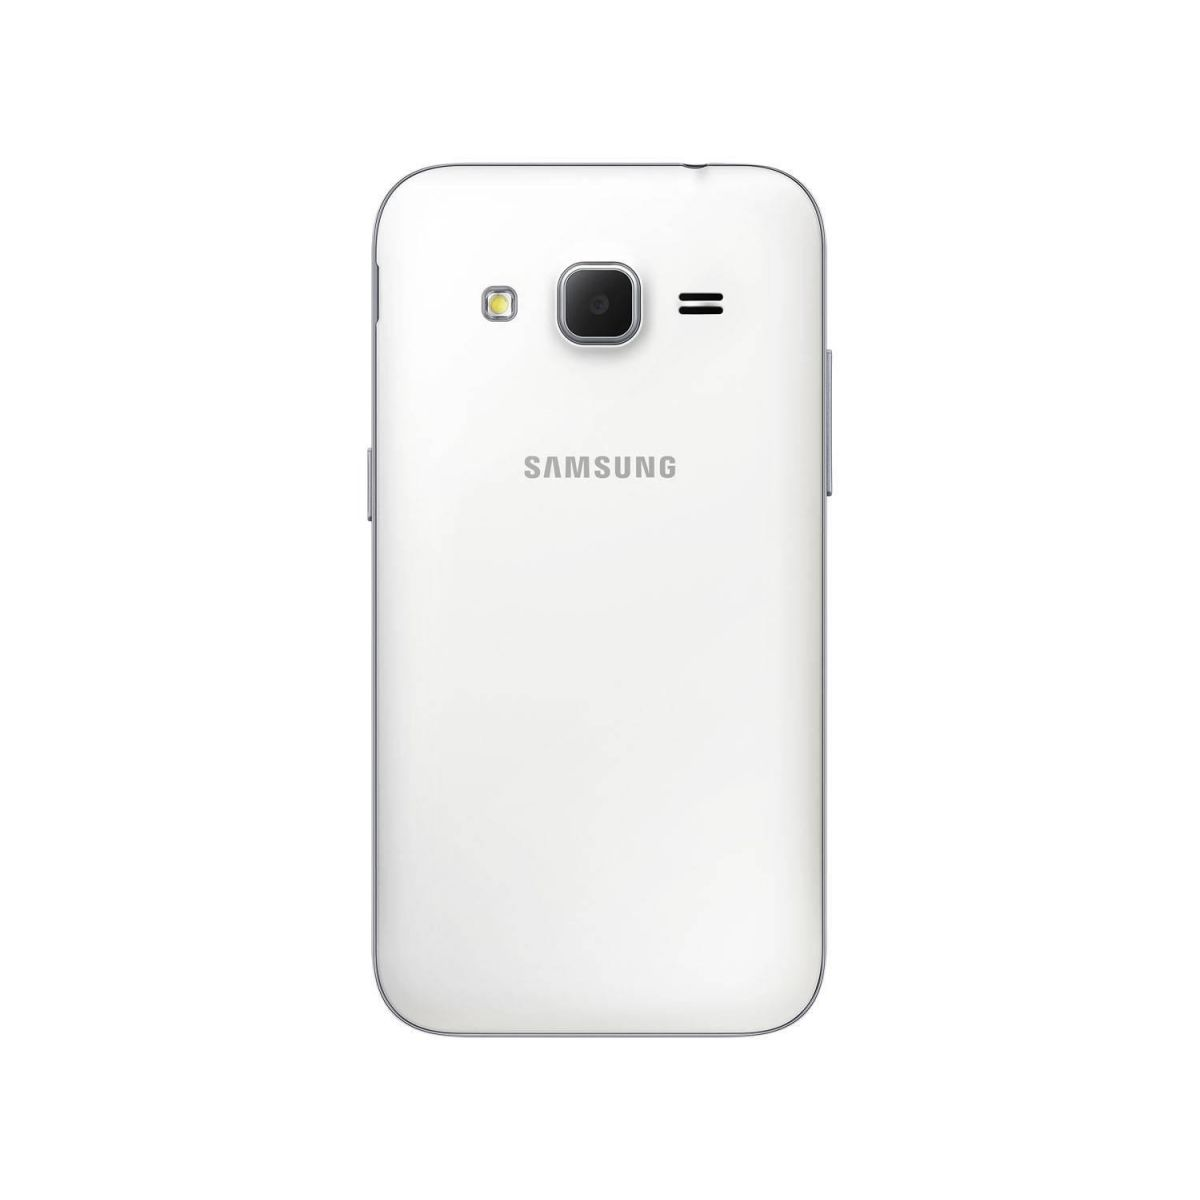 Smartphone Galaxy J1, Dual Chip, J120H, Android 5.1, Branco - Samsung